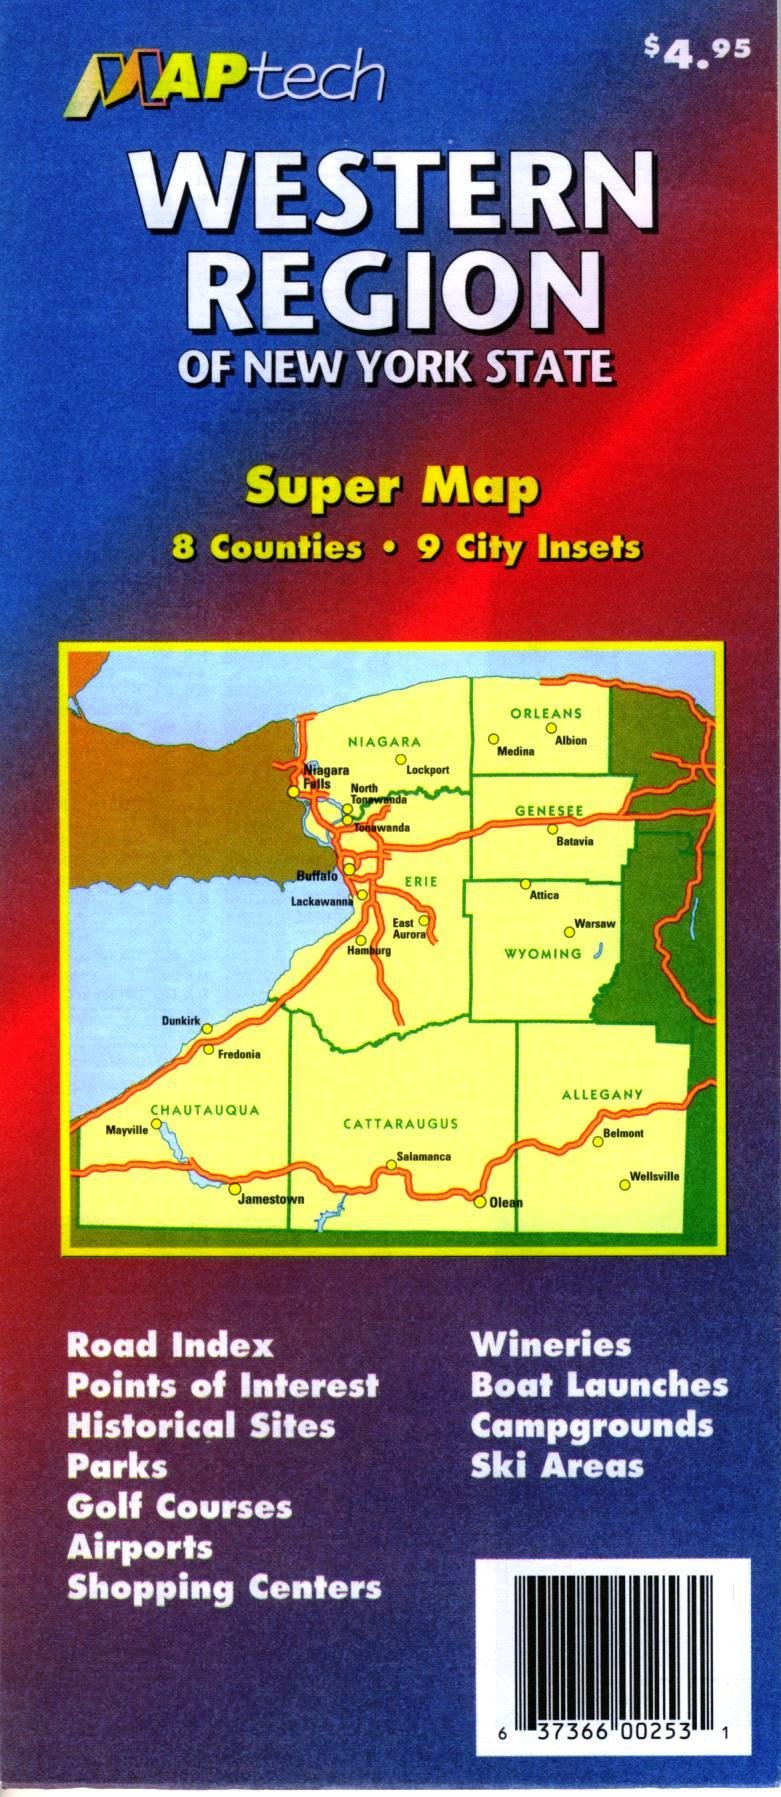 Western New York State Map.Western Region Of New York State Super Map 8 Counties 9 City